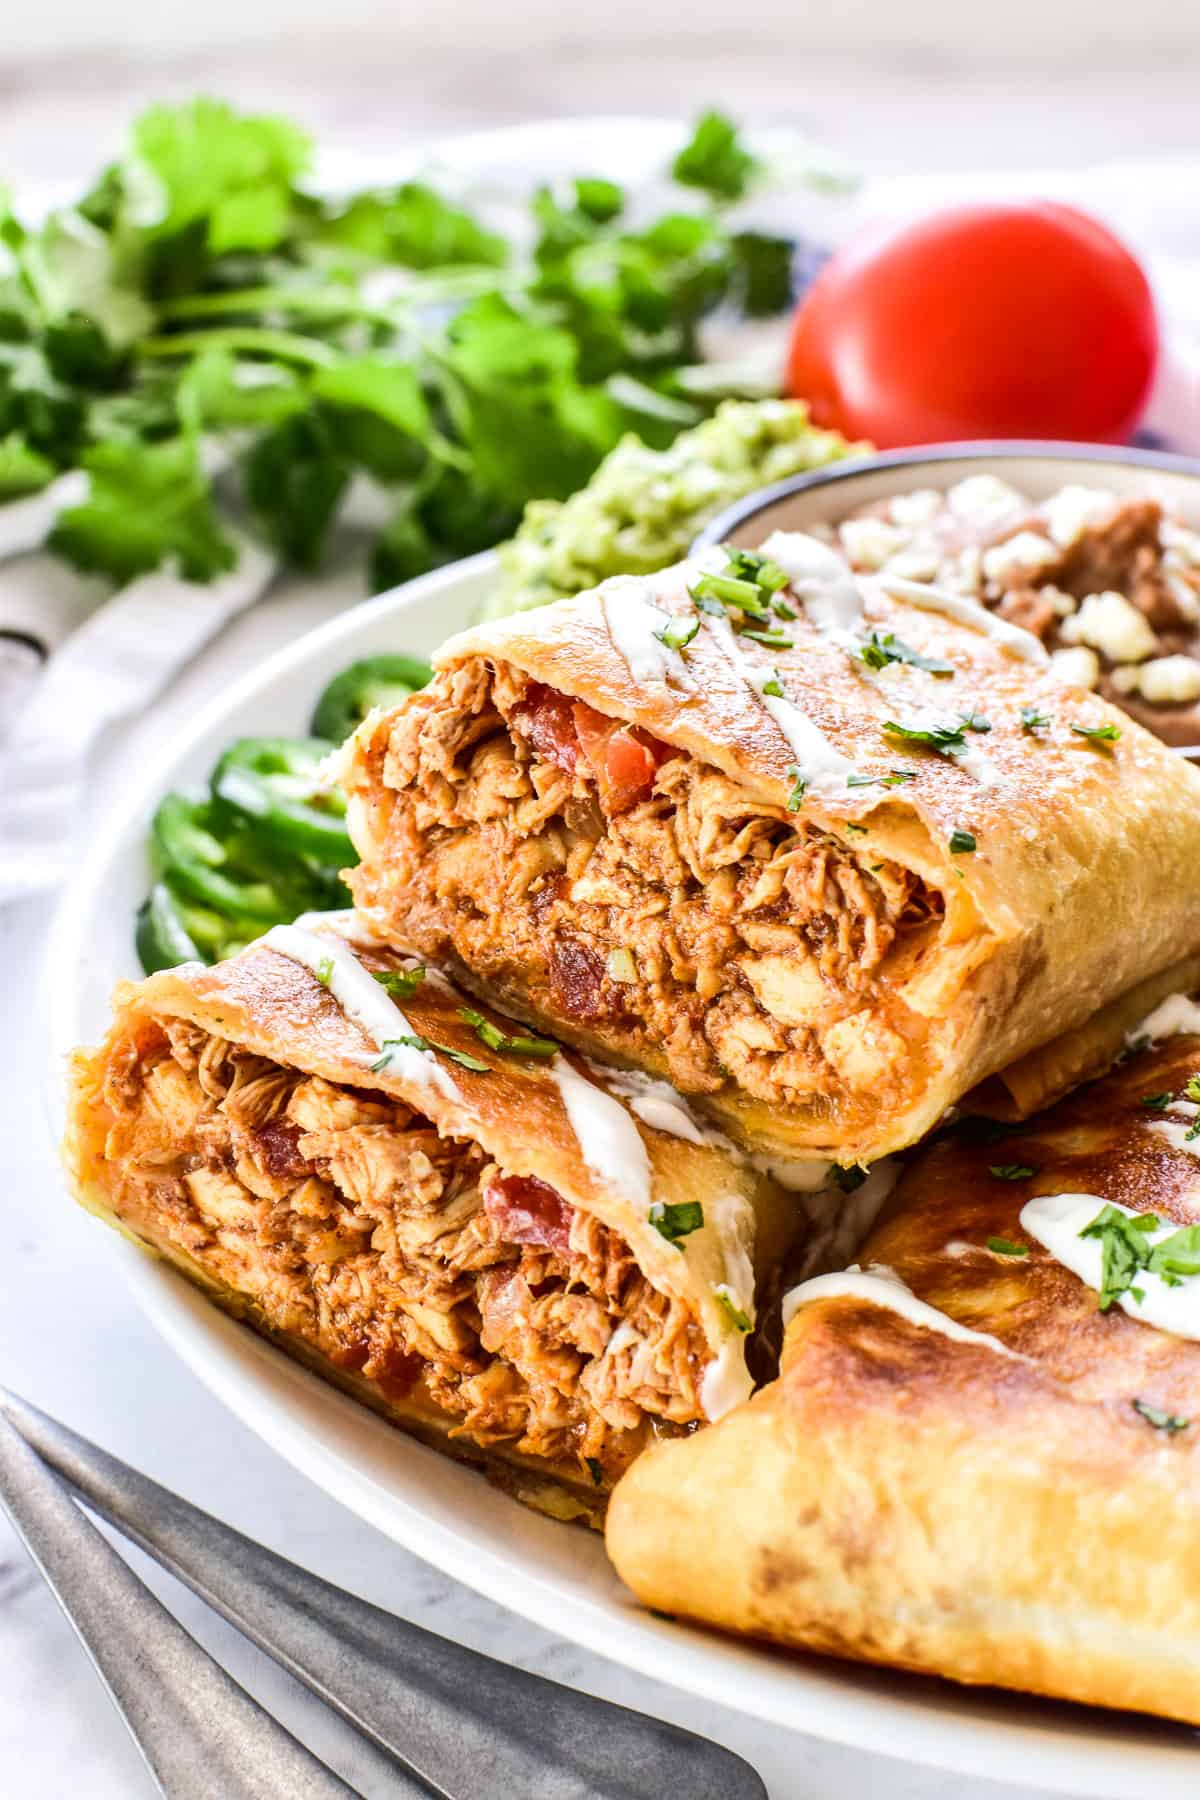 Chicken Chimichanga cut in half to show the inside